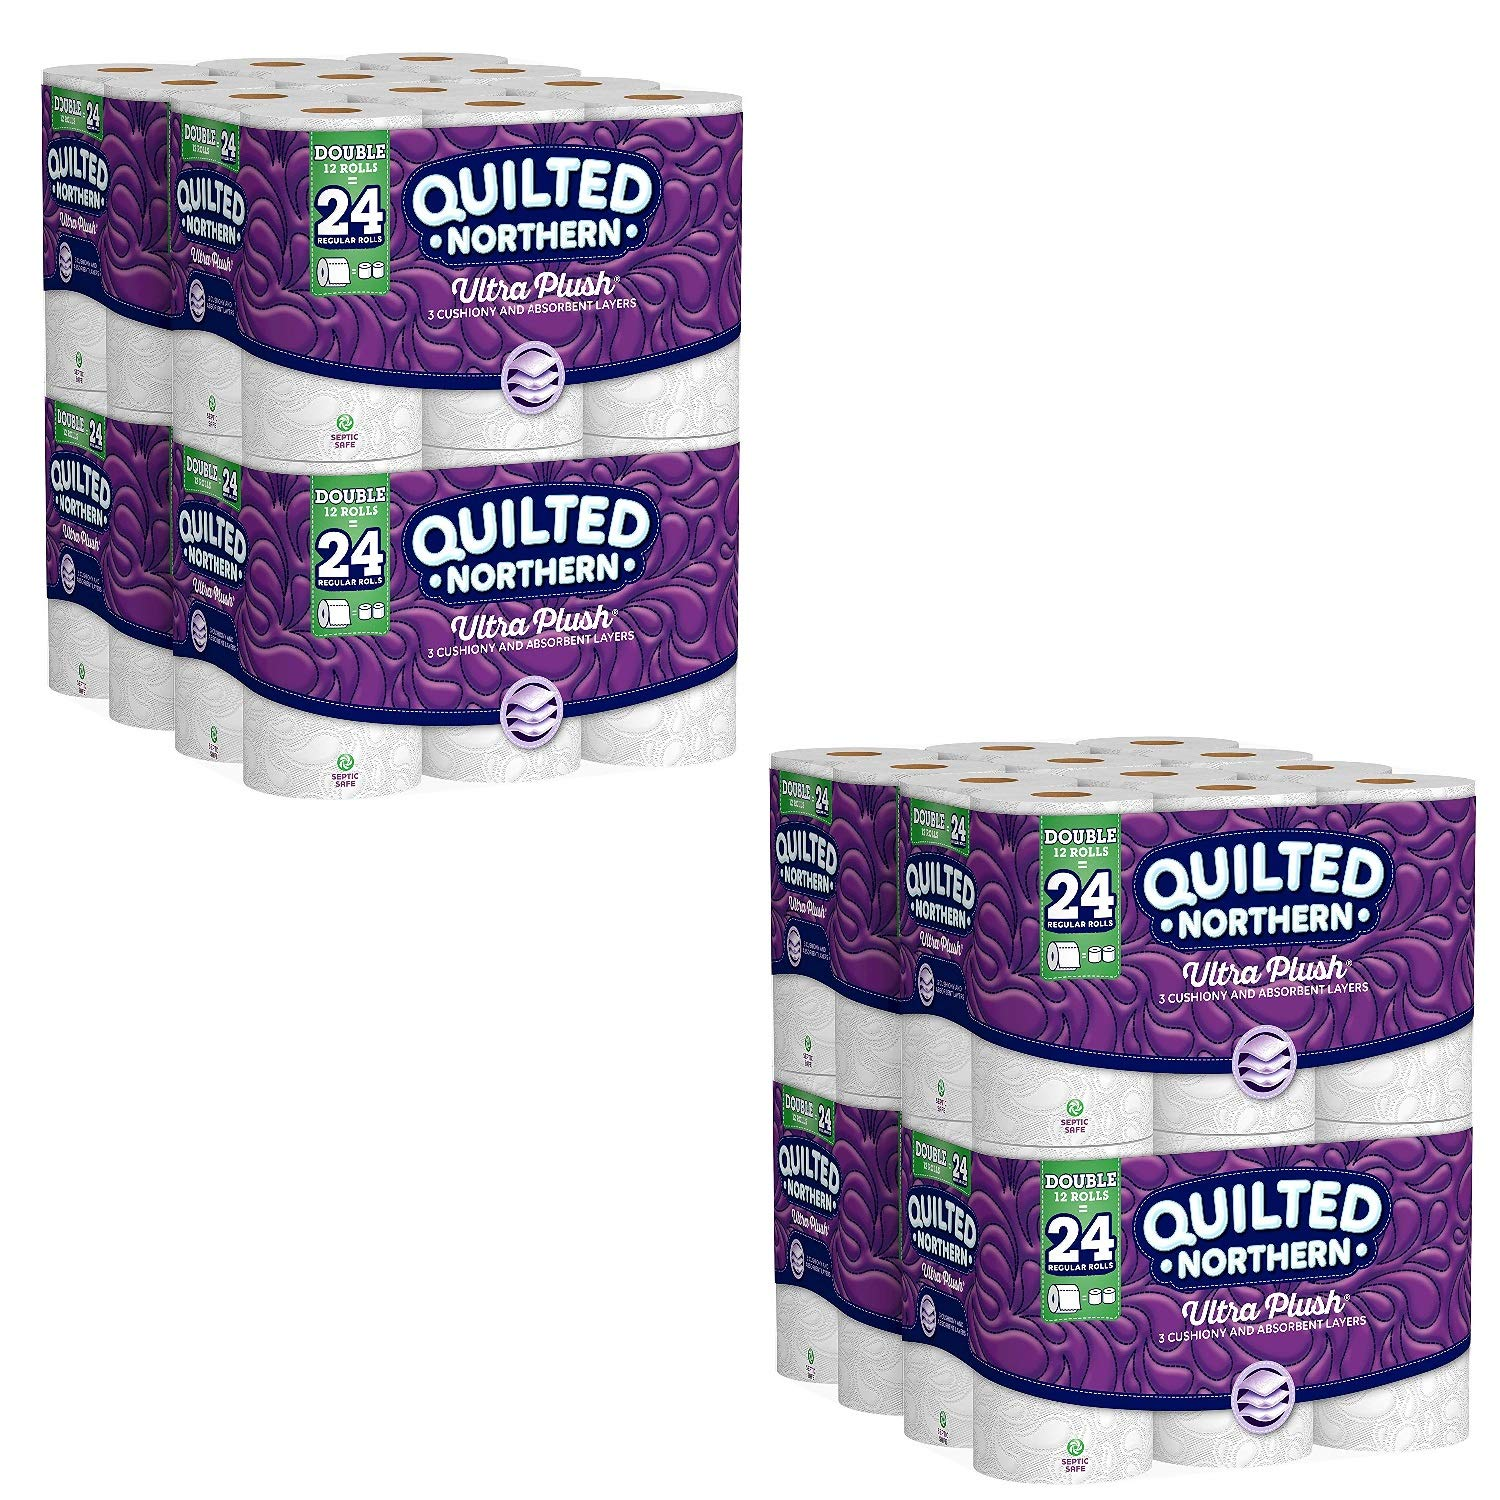 Quilted Northern Ultra Plush Toilet Paper, 48 Double Rolls, 48 = 96 Regular Rolls, 3 Ply Bath Tissue, 4 Pack of 12 Rolls (96 Double Rolls)